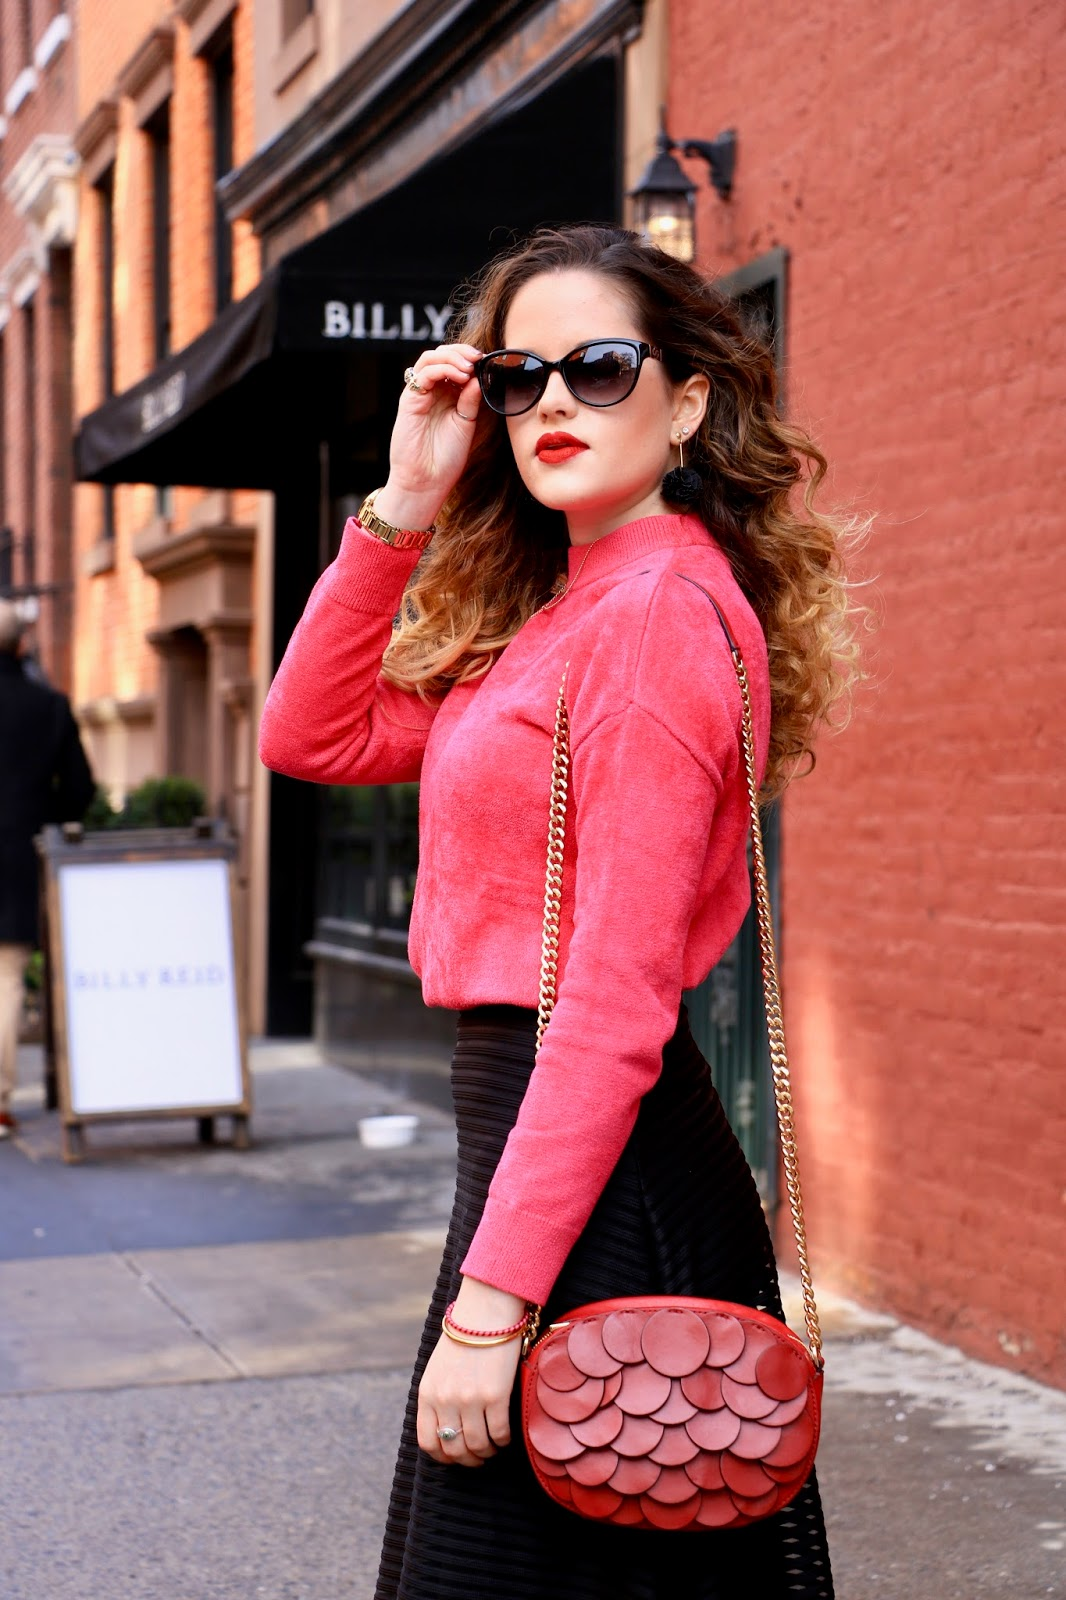 Nyc fashion blogger Kathleen Harper's date night outfit